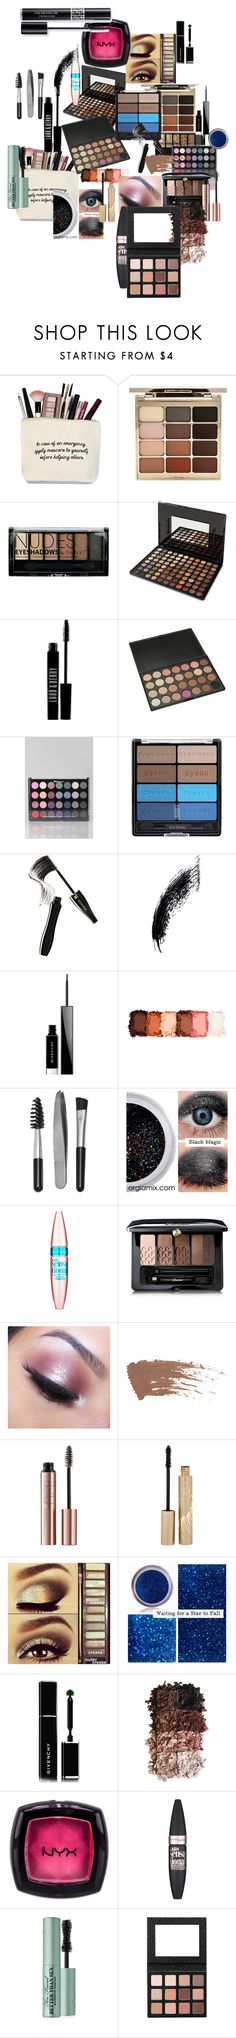 """Lots of Eyeshow and Mascara --Plus One eyeliner"" by faeryrain on Polyvore featuring beauty, Stila, Boohoo, BHCosmetics, Lord & Berry, Black Radiance, Lancôme, Givenchy, NYX and Sephora Collection"